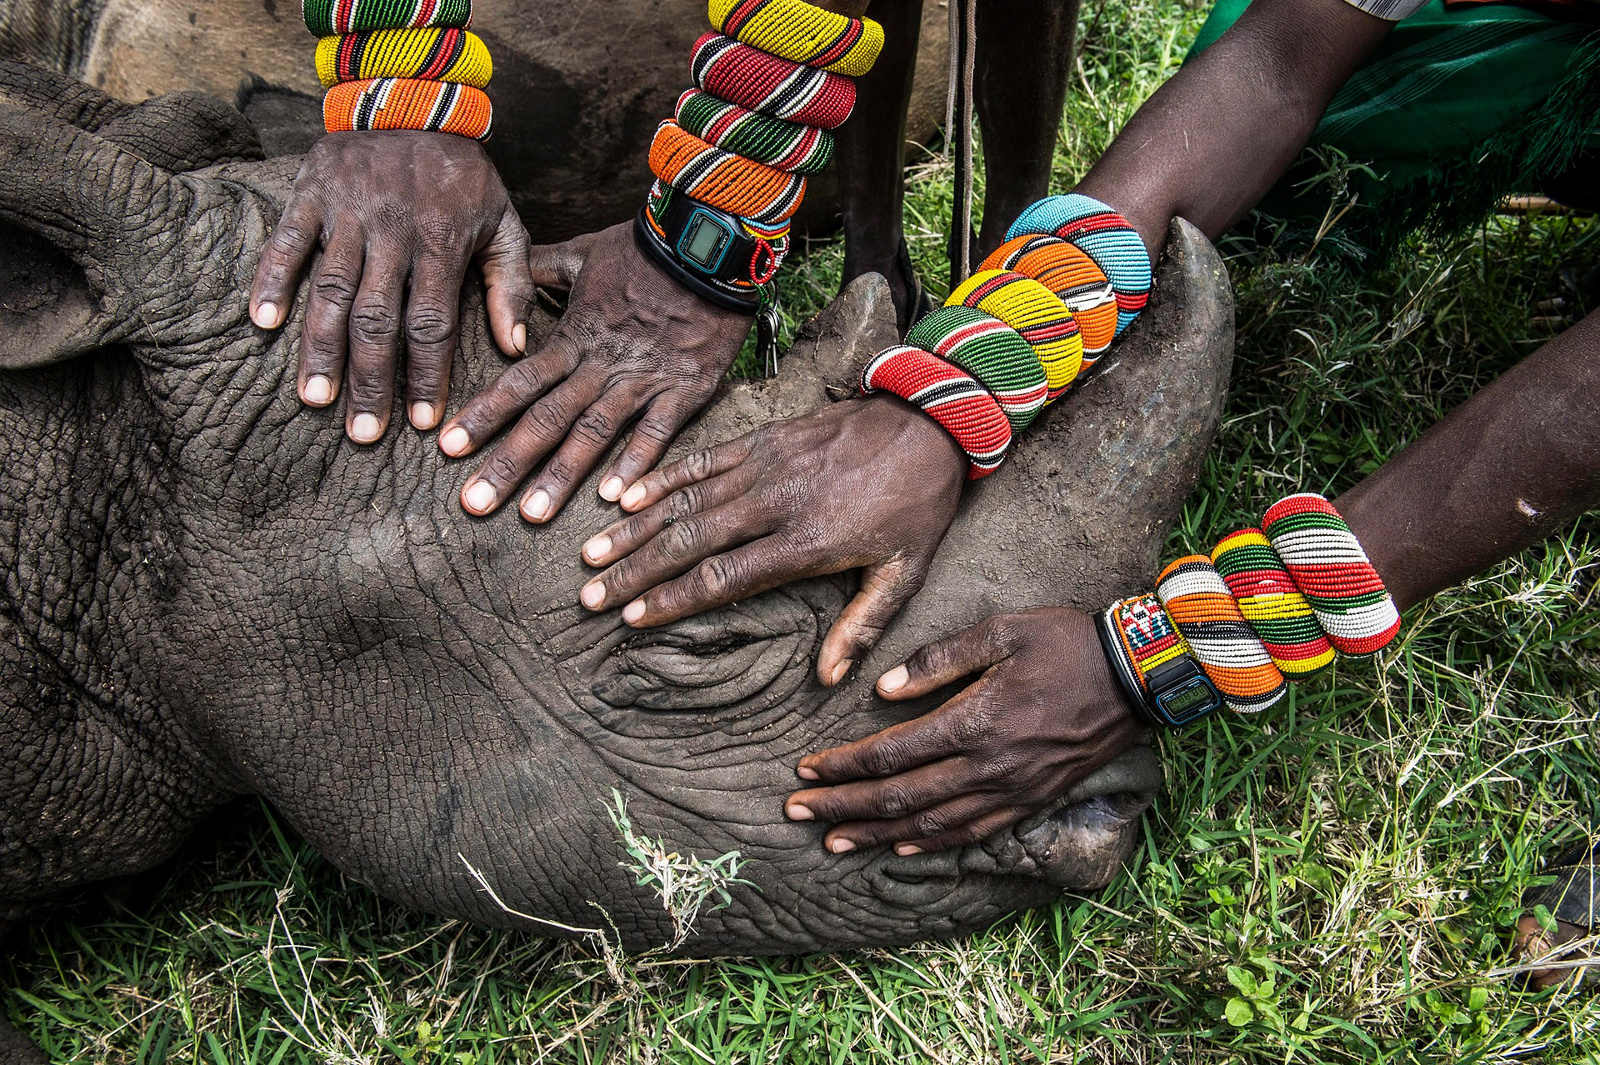 Heartbreaking Photo of Orphaned Rhino Shows Us That the Fate of This Species is in Our Hands